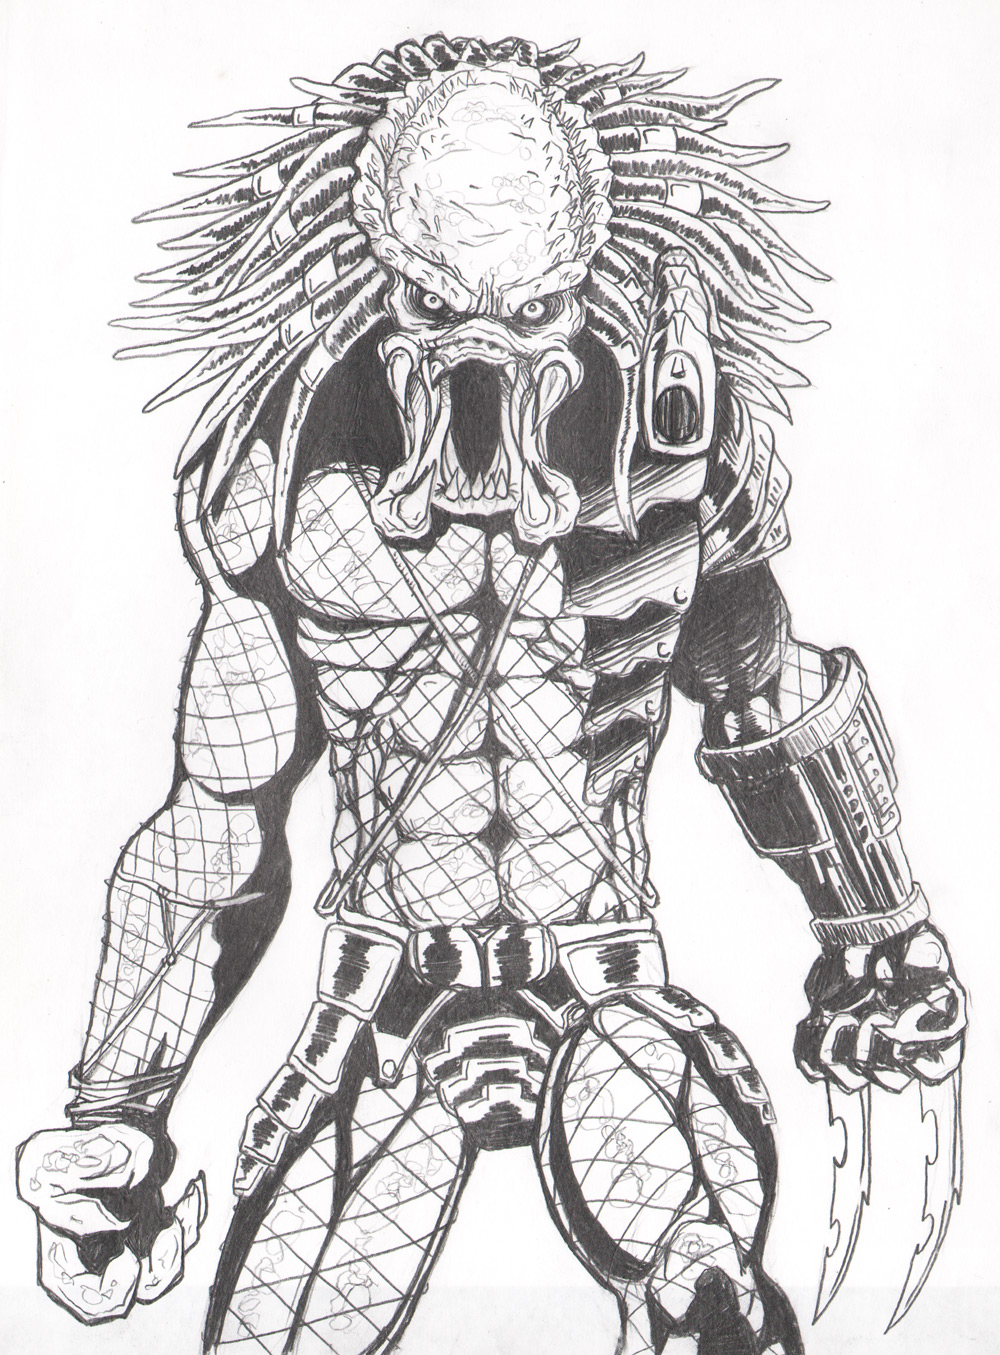 Predator pencil by JeremiahLambertArt